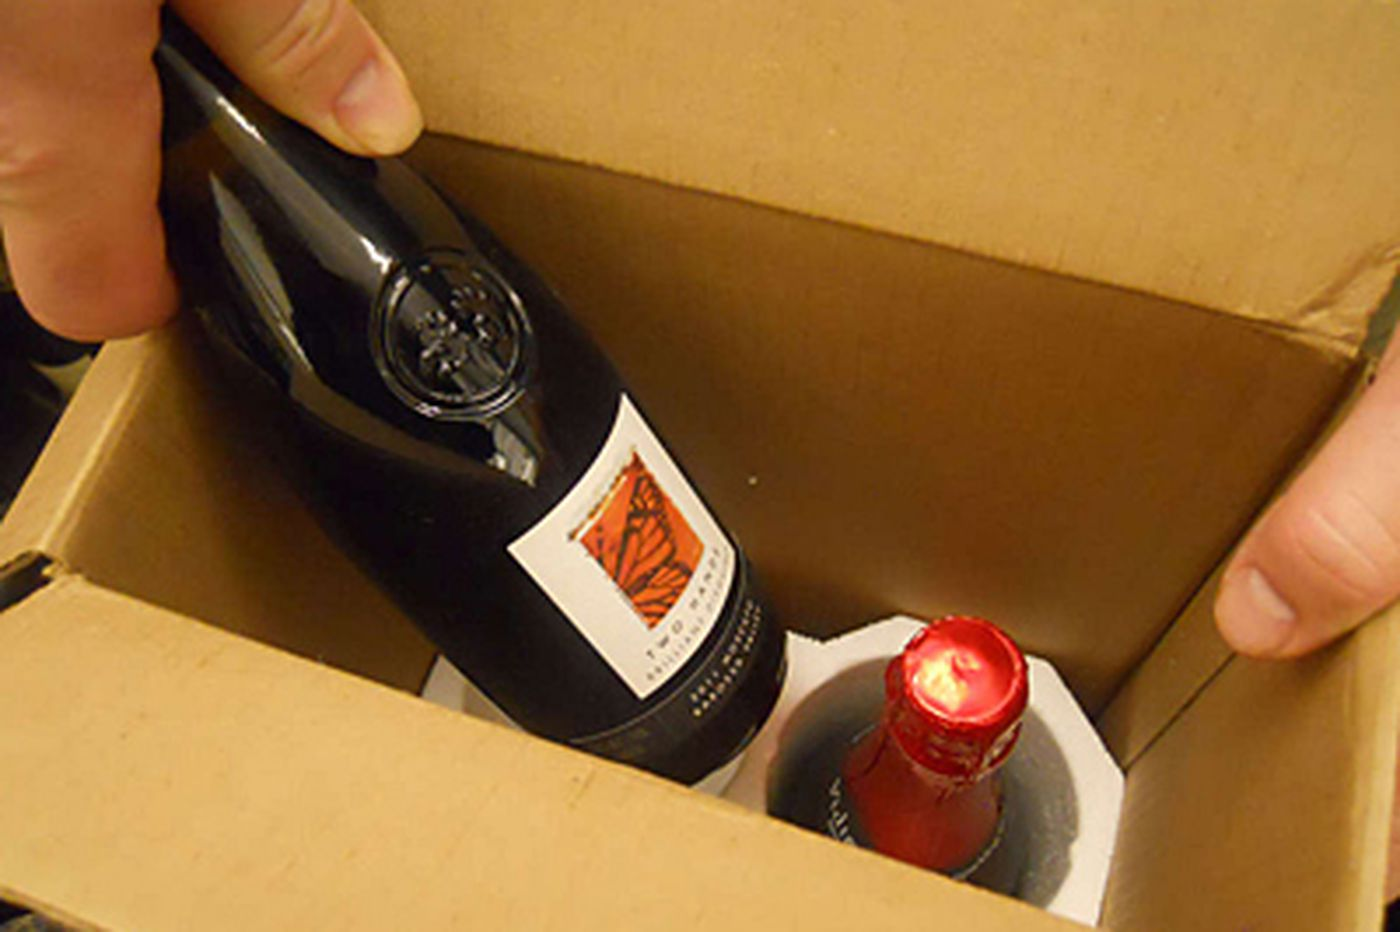 LCB tries direct home delivery of wine, spirits